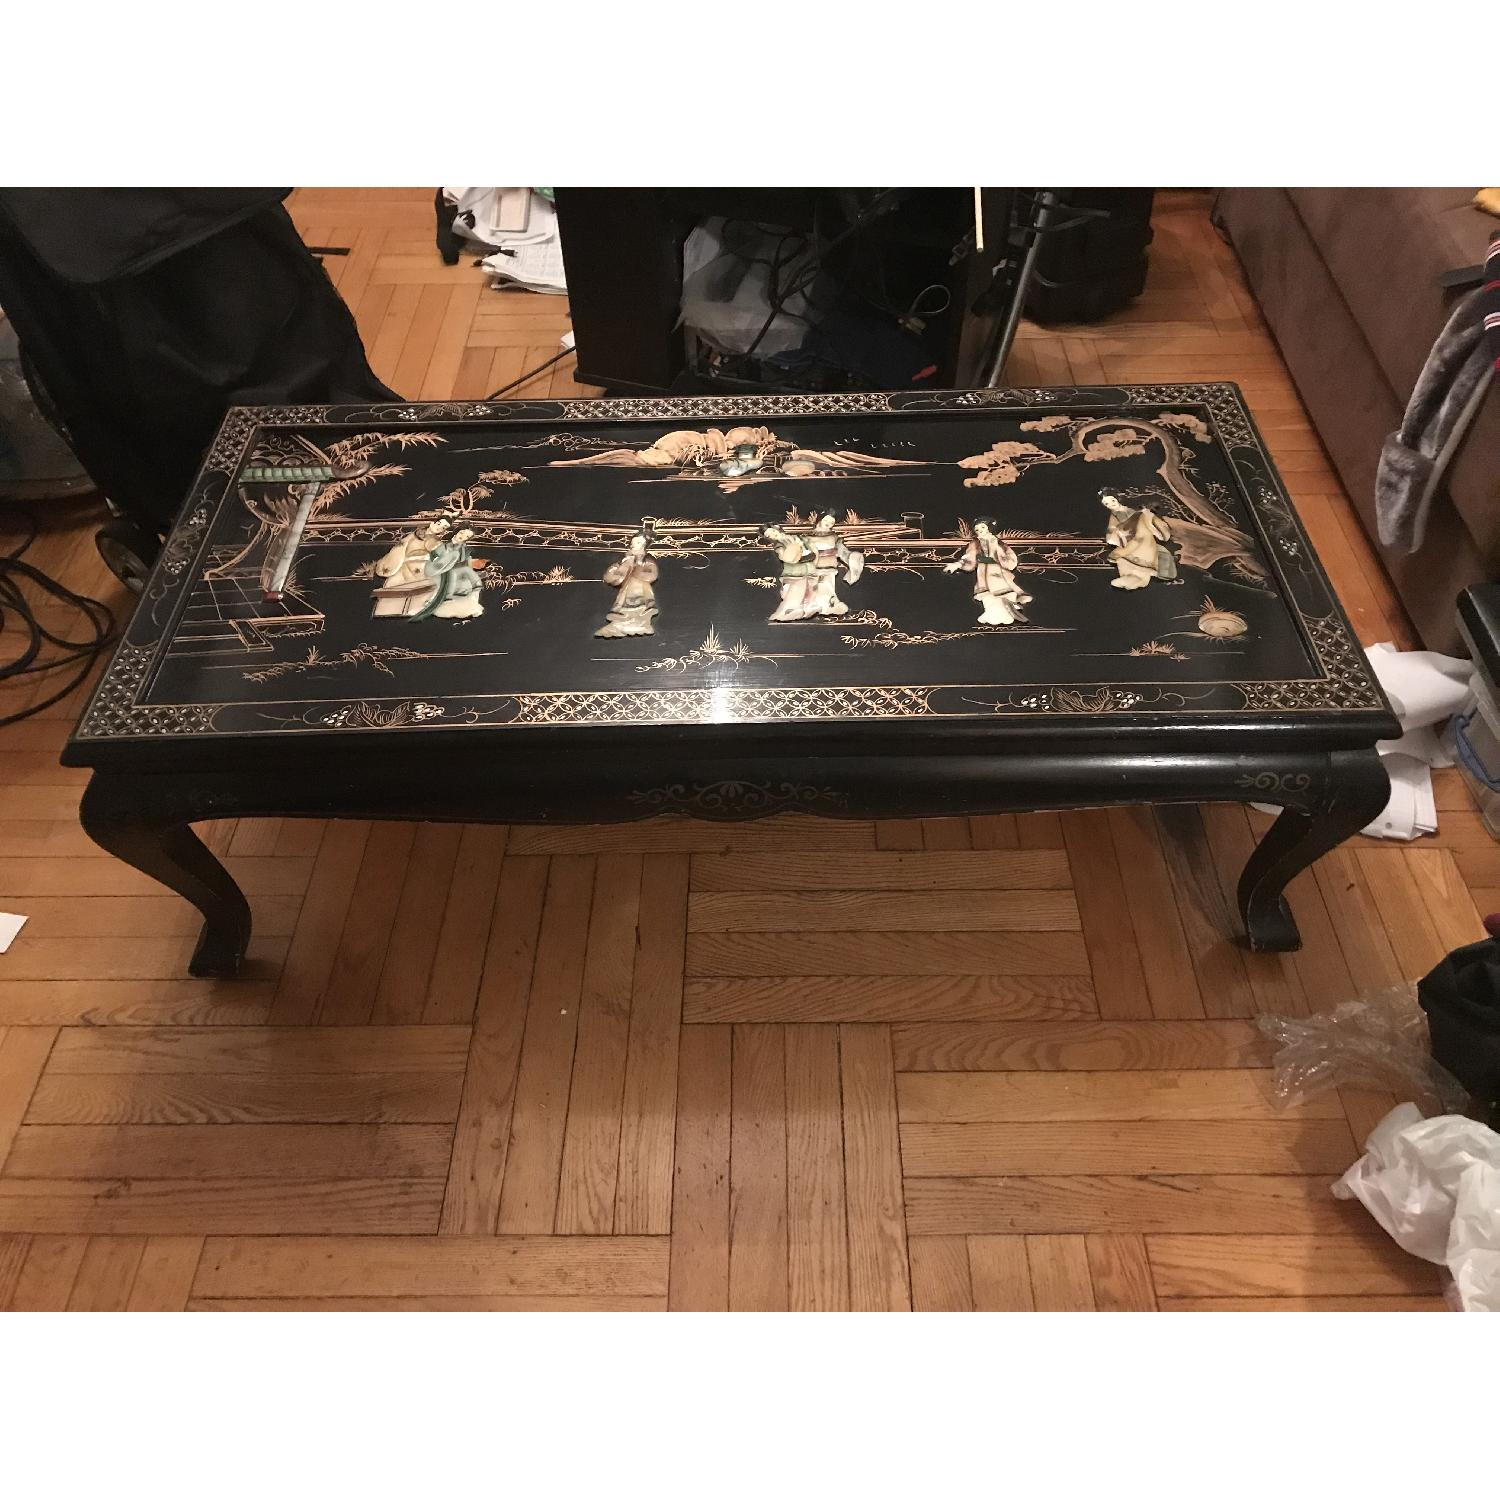 Antique Black Lacquer Mother of Pearl Figurine Coffee Table - image-1